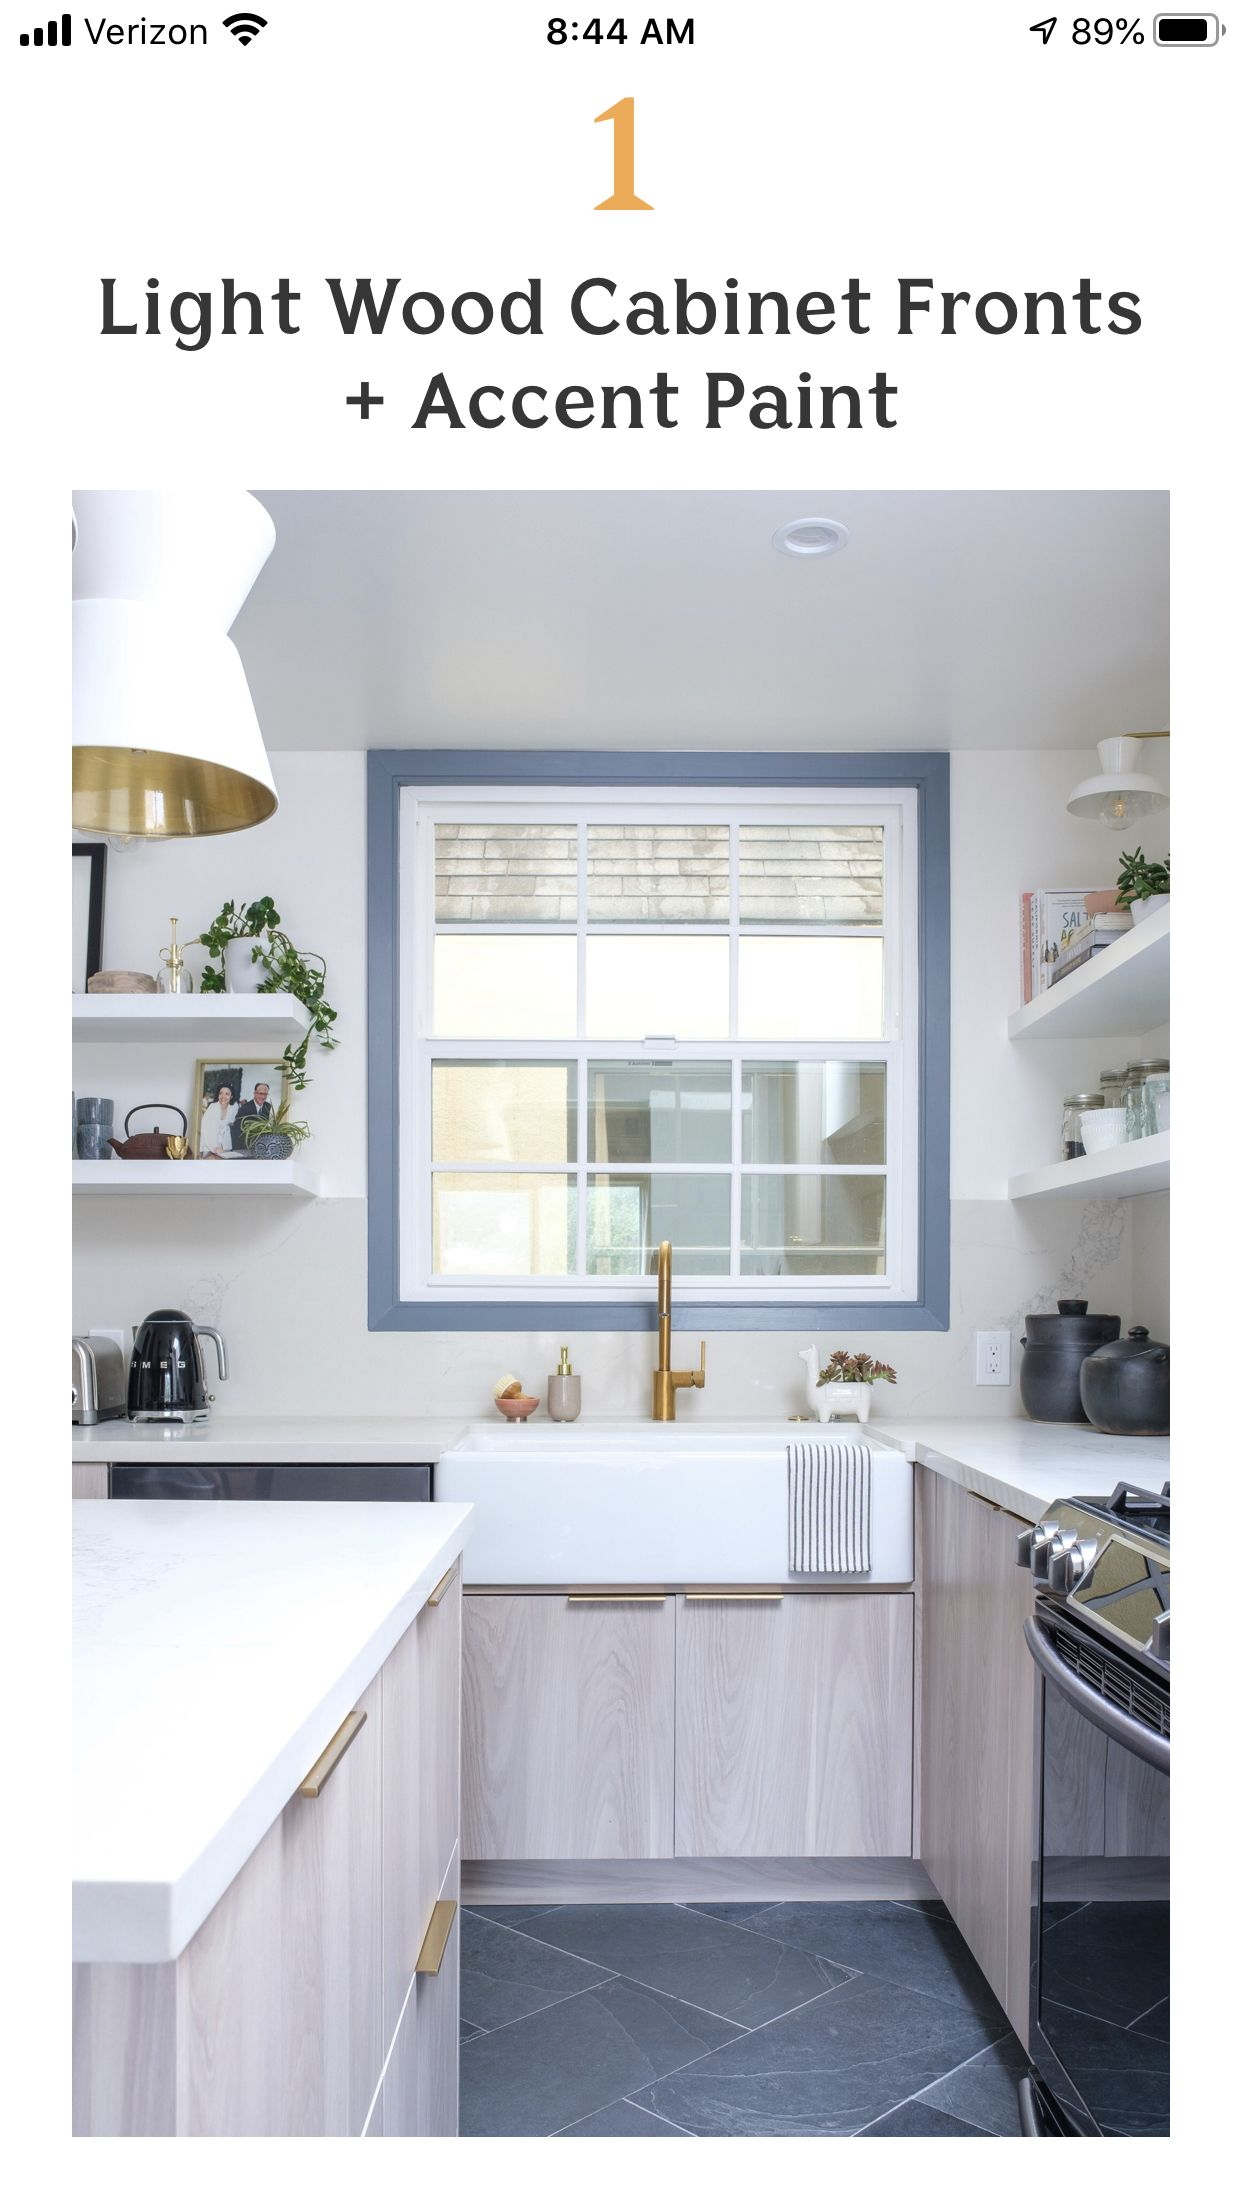 pin by kristi howard on md house in 2020 light wood cabinets wood cabinets cabinet fronts on kitchen cabinets light wood id=93219